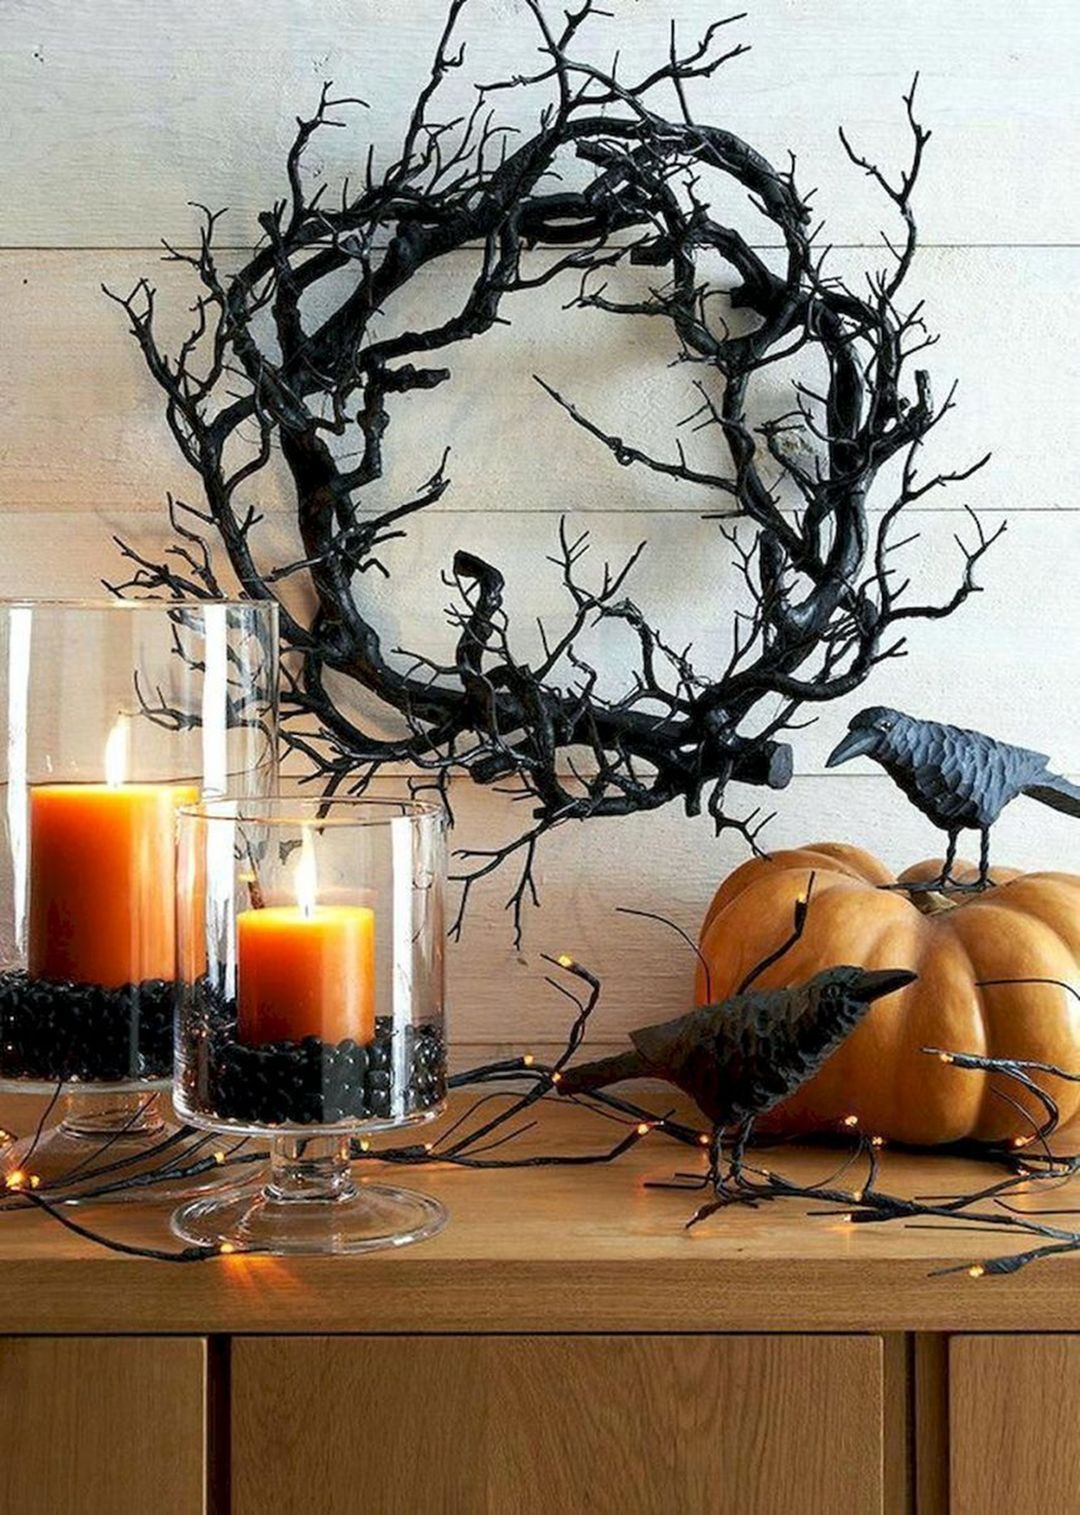 Awesome Vintage Halloween Decorating Ideas 16300 Home